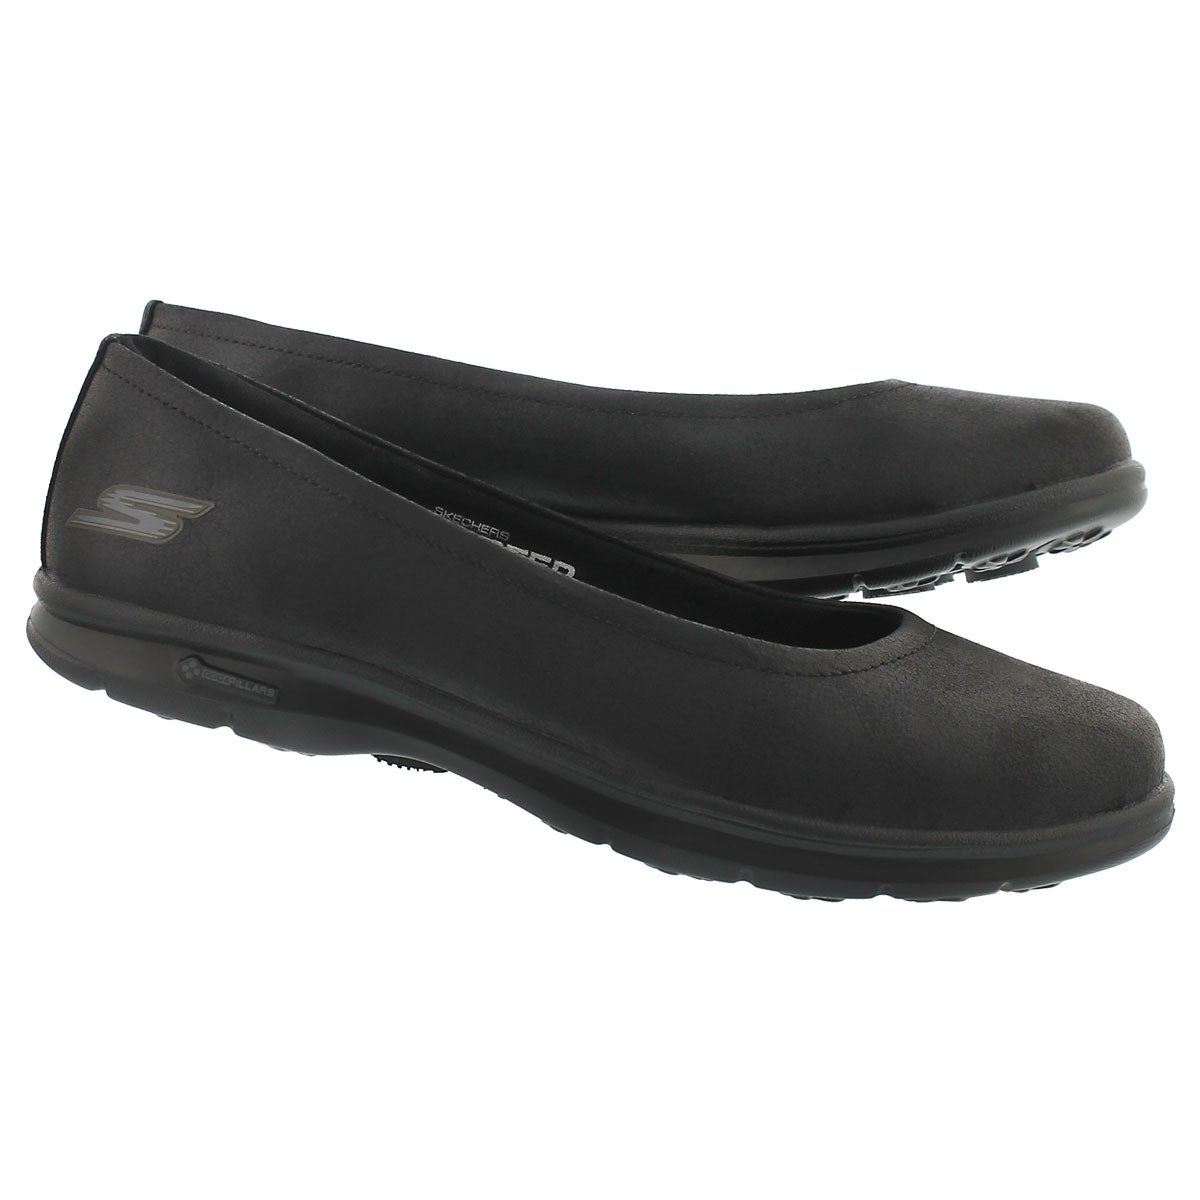 Lds Distinguished black casual flat